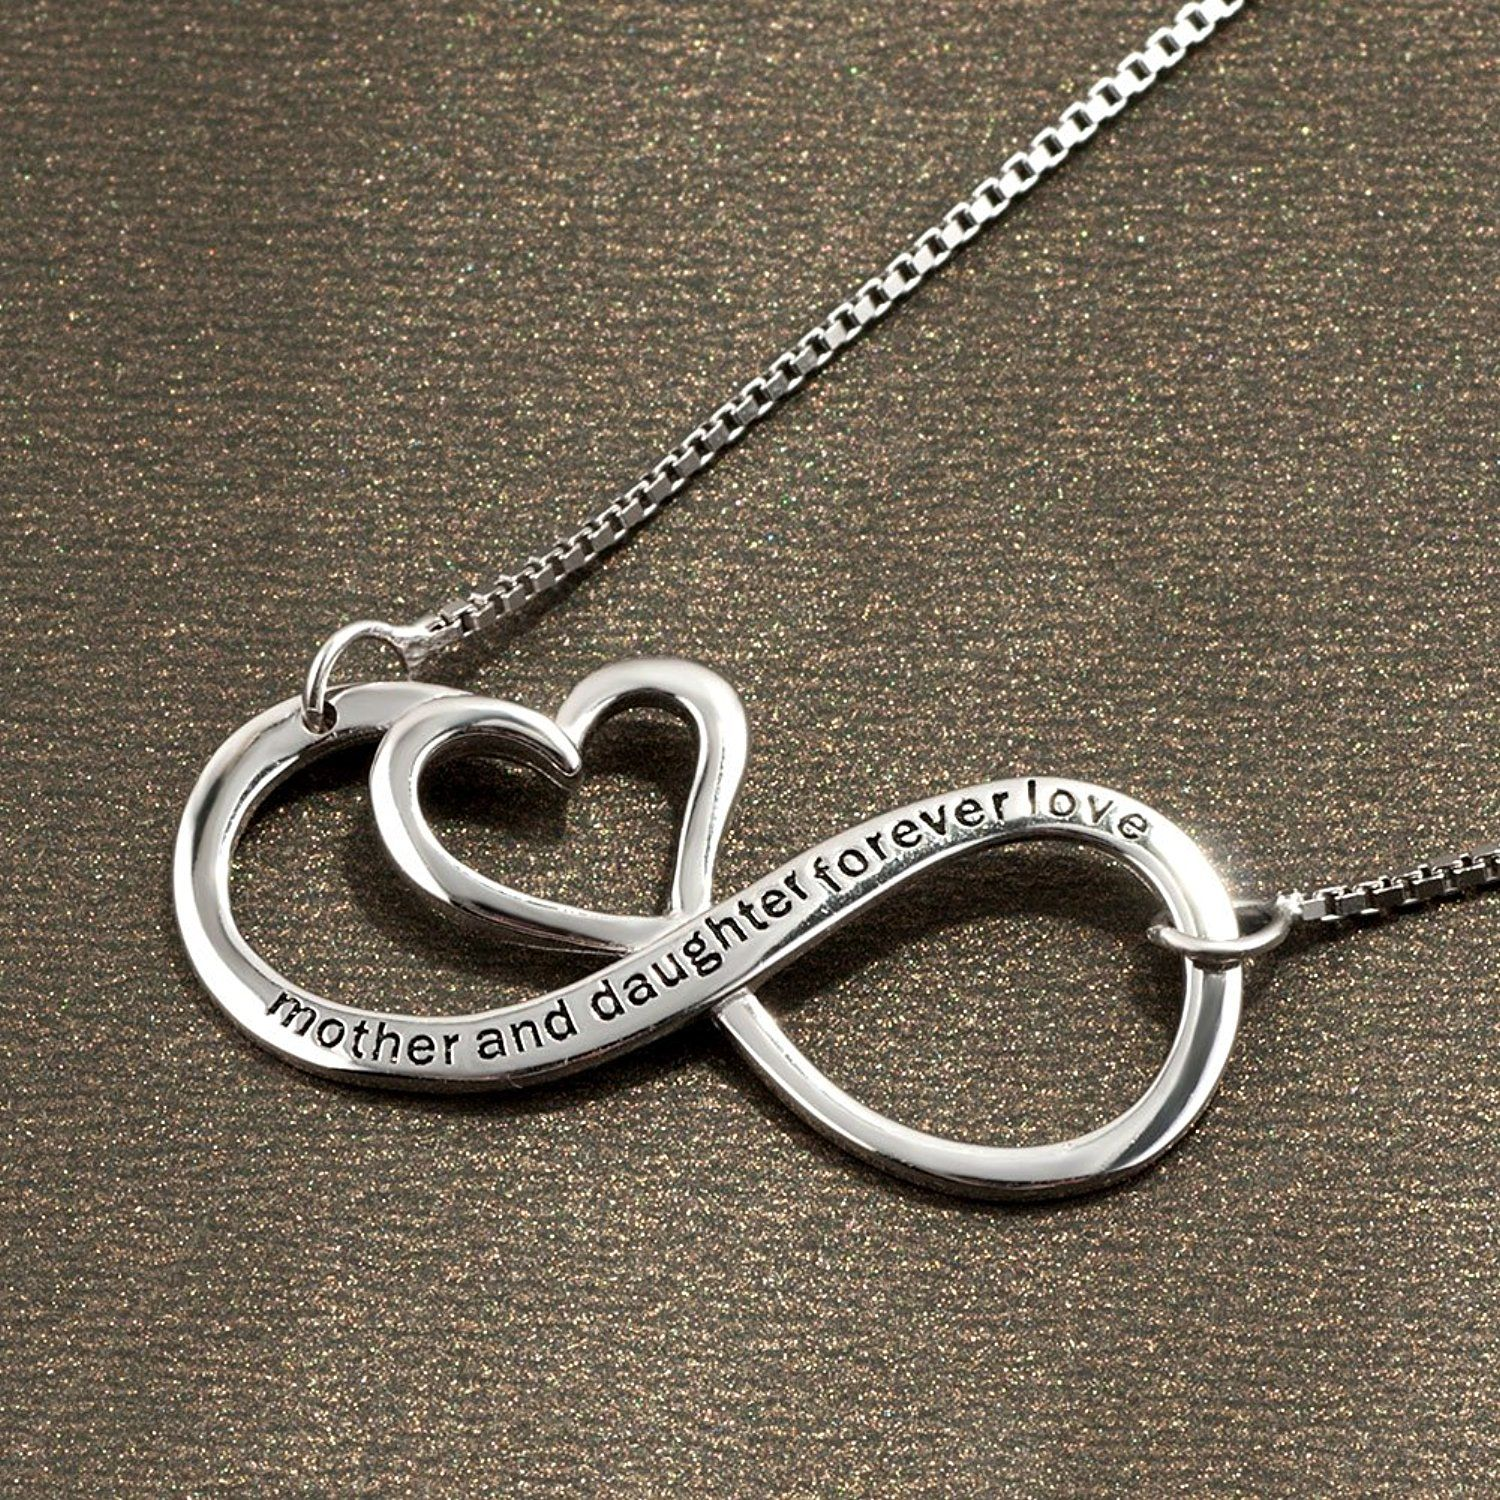 infinity set gold of infinite bracelet connection infinte and necklace mother ani daughter alex